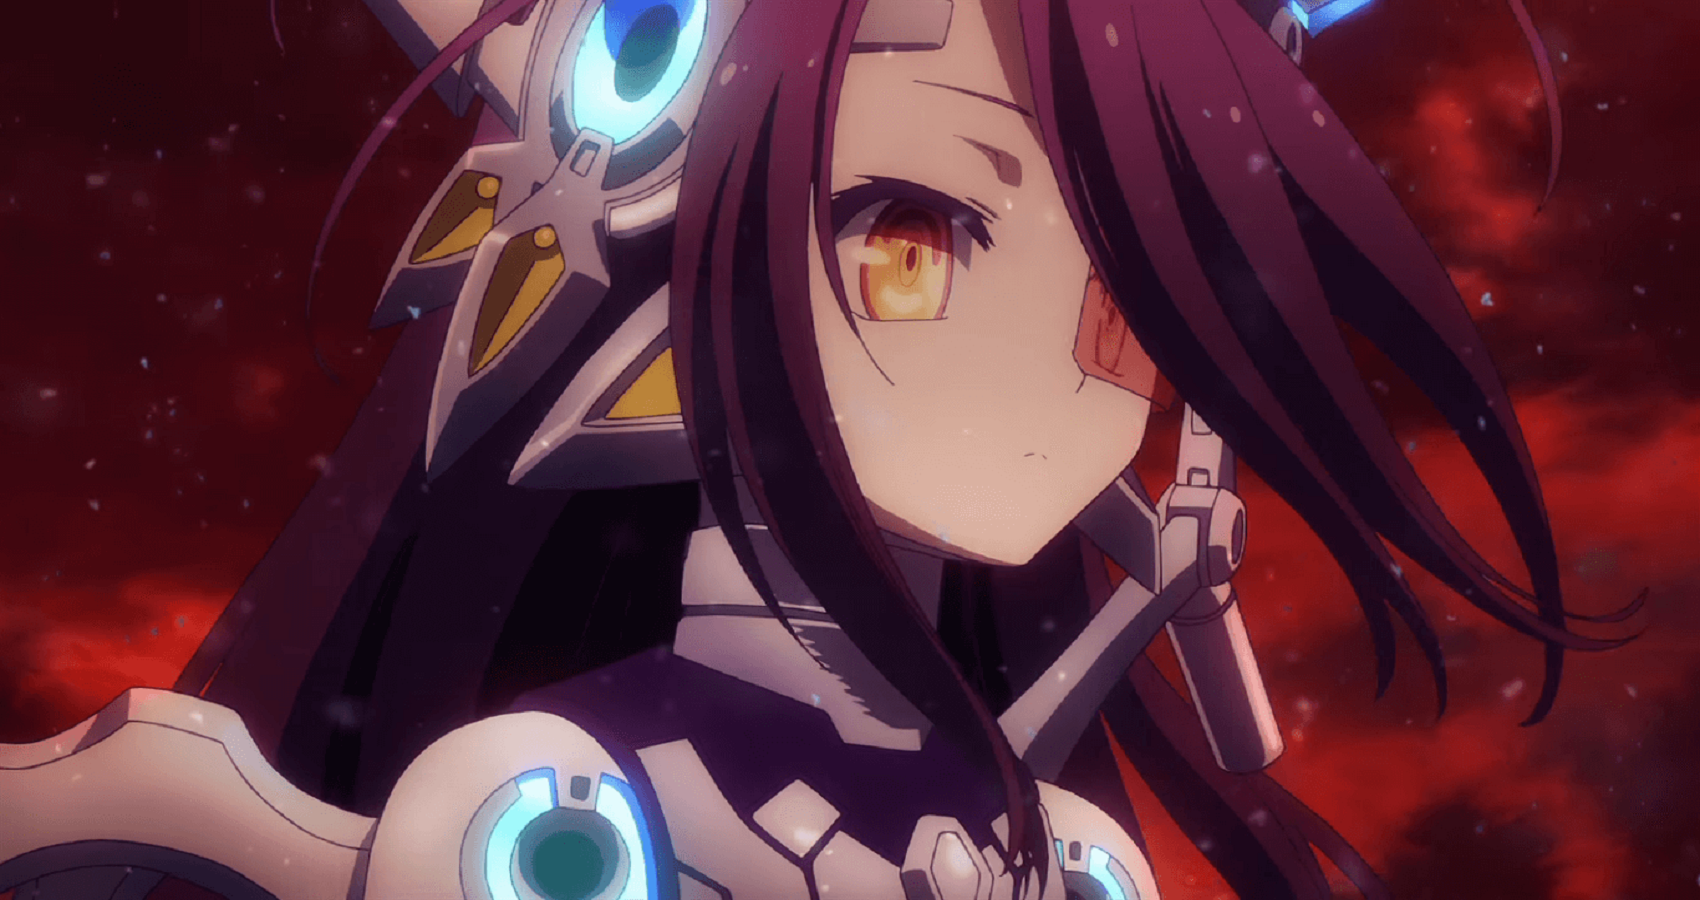 10 Anime To Watch If You Love That Time I Got Reincarnated as a Slime